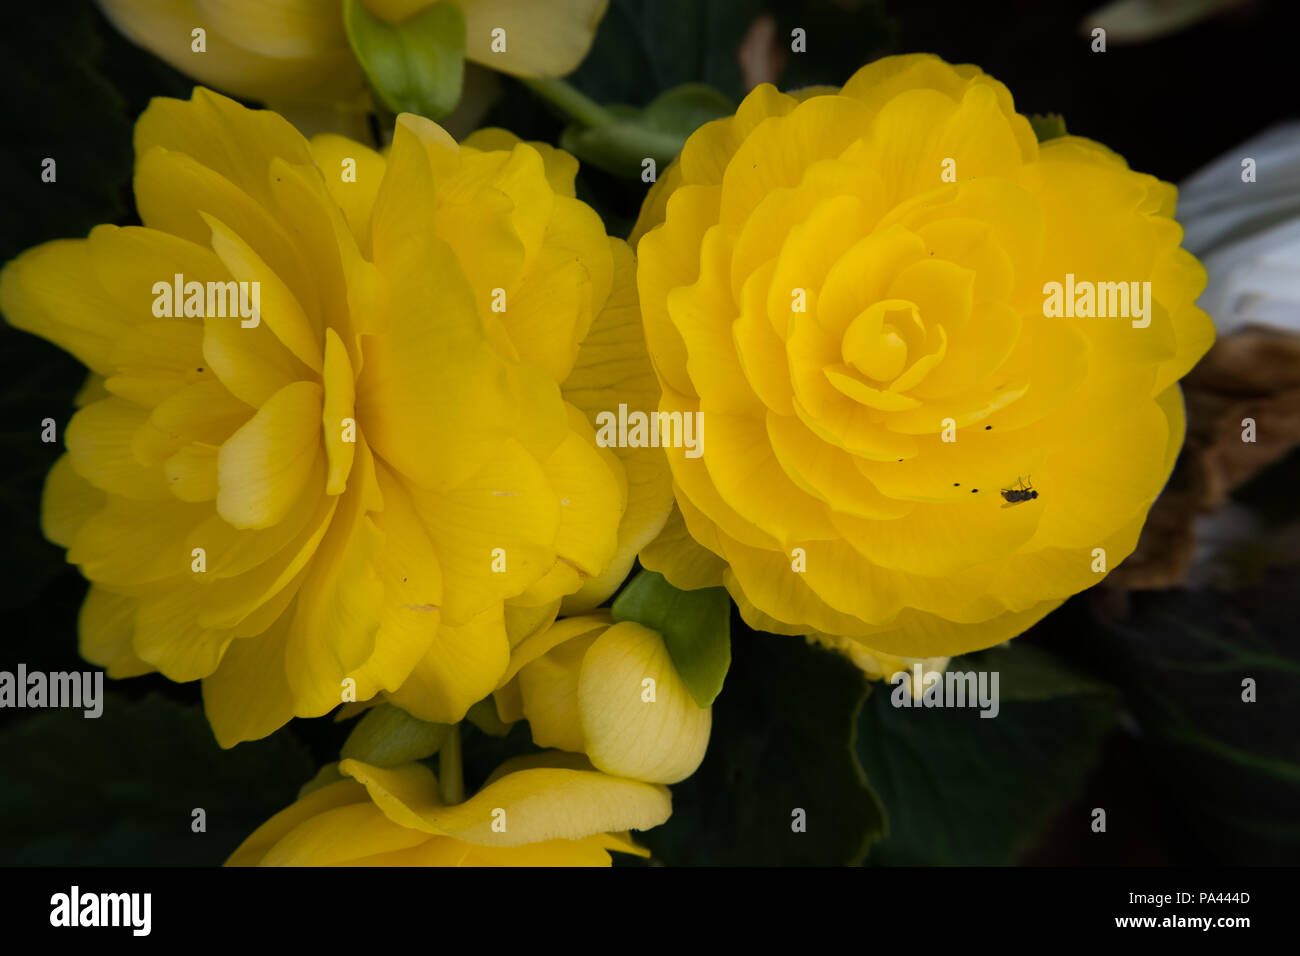 Yellow Rose Flower Wallpaper Background Beautiful Nature Image No